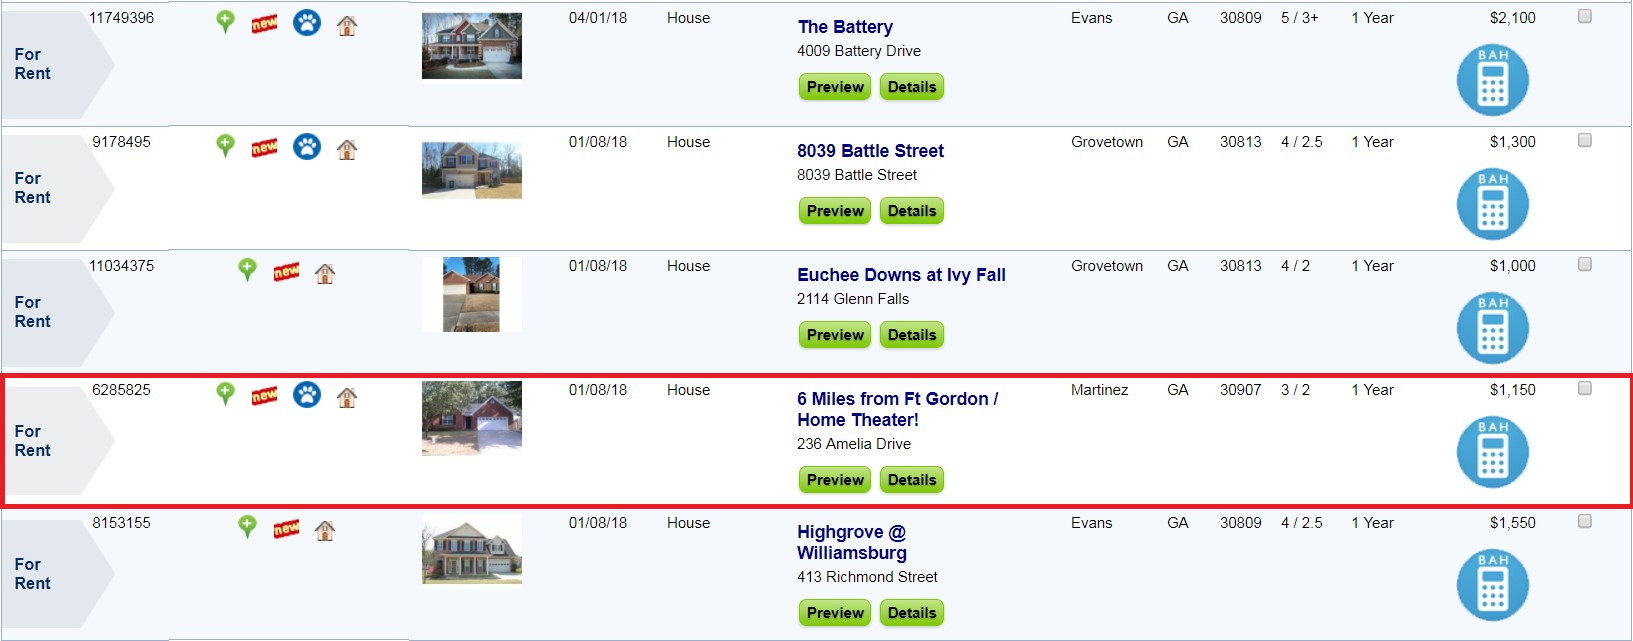 Using the Listing Title Field to Increase Listing Views